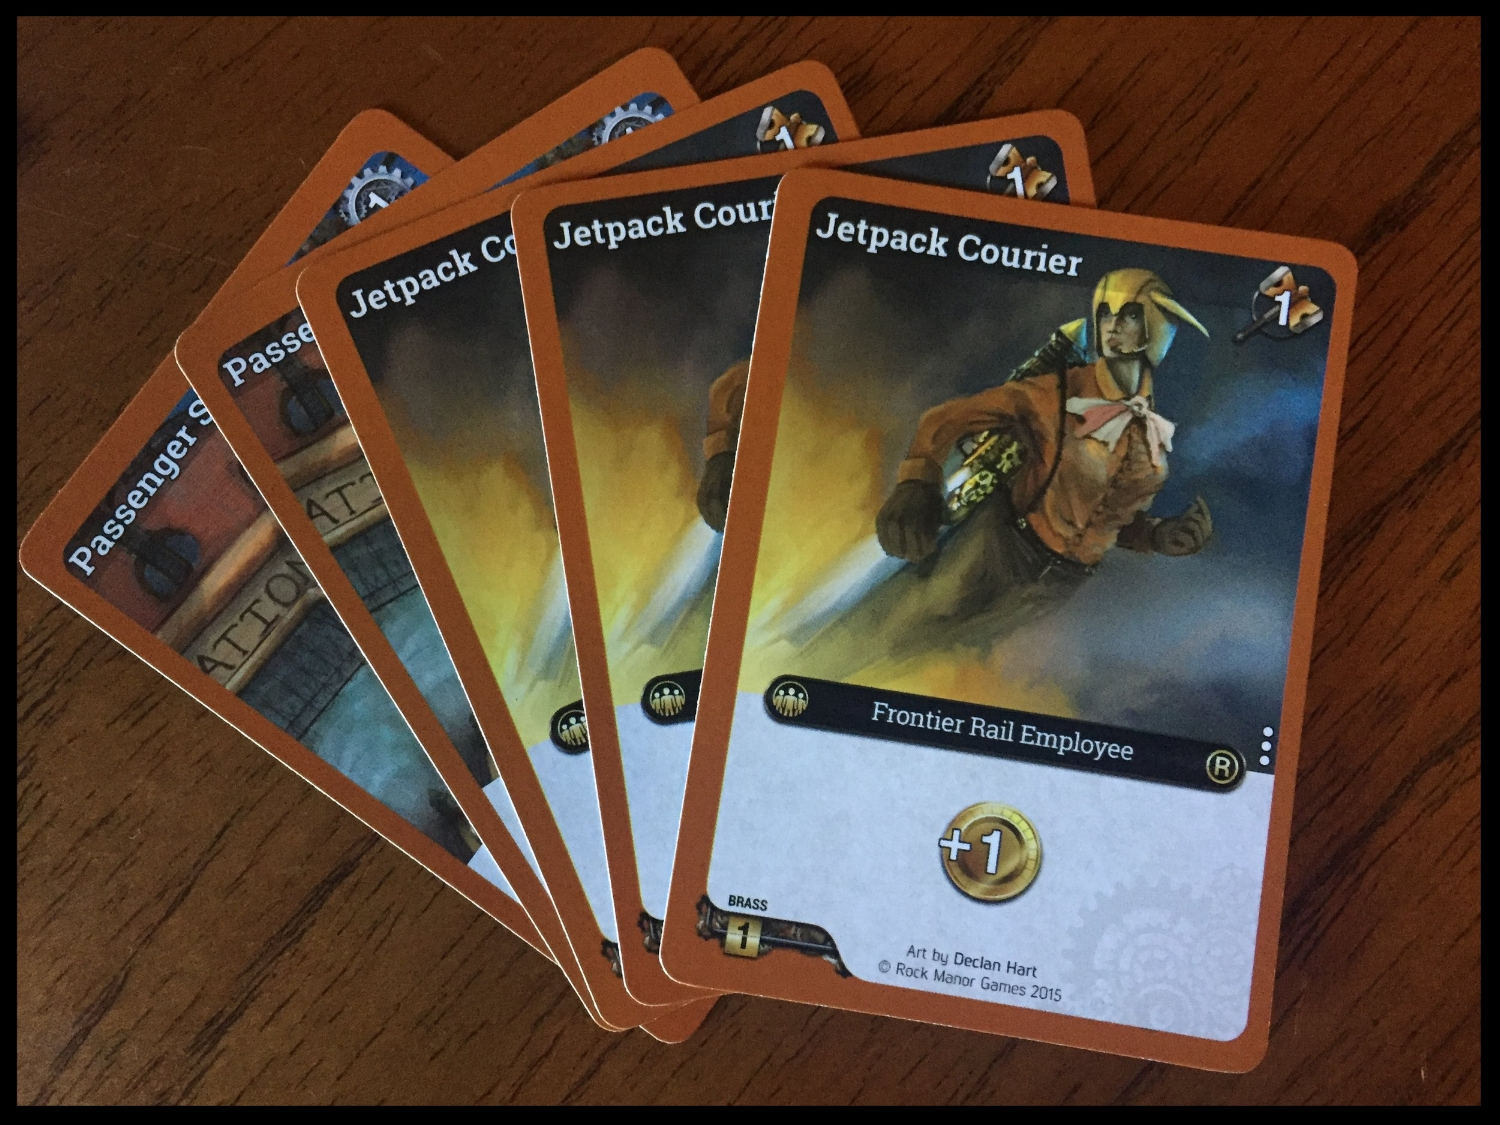 These cards are only available for purchase for the Frontier Rail faction.